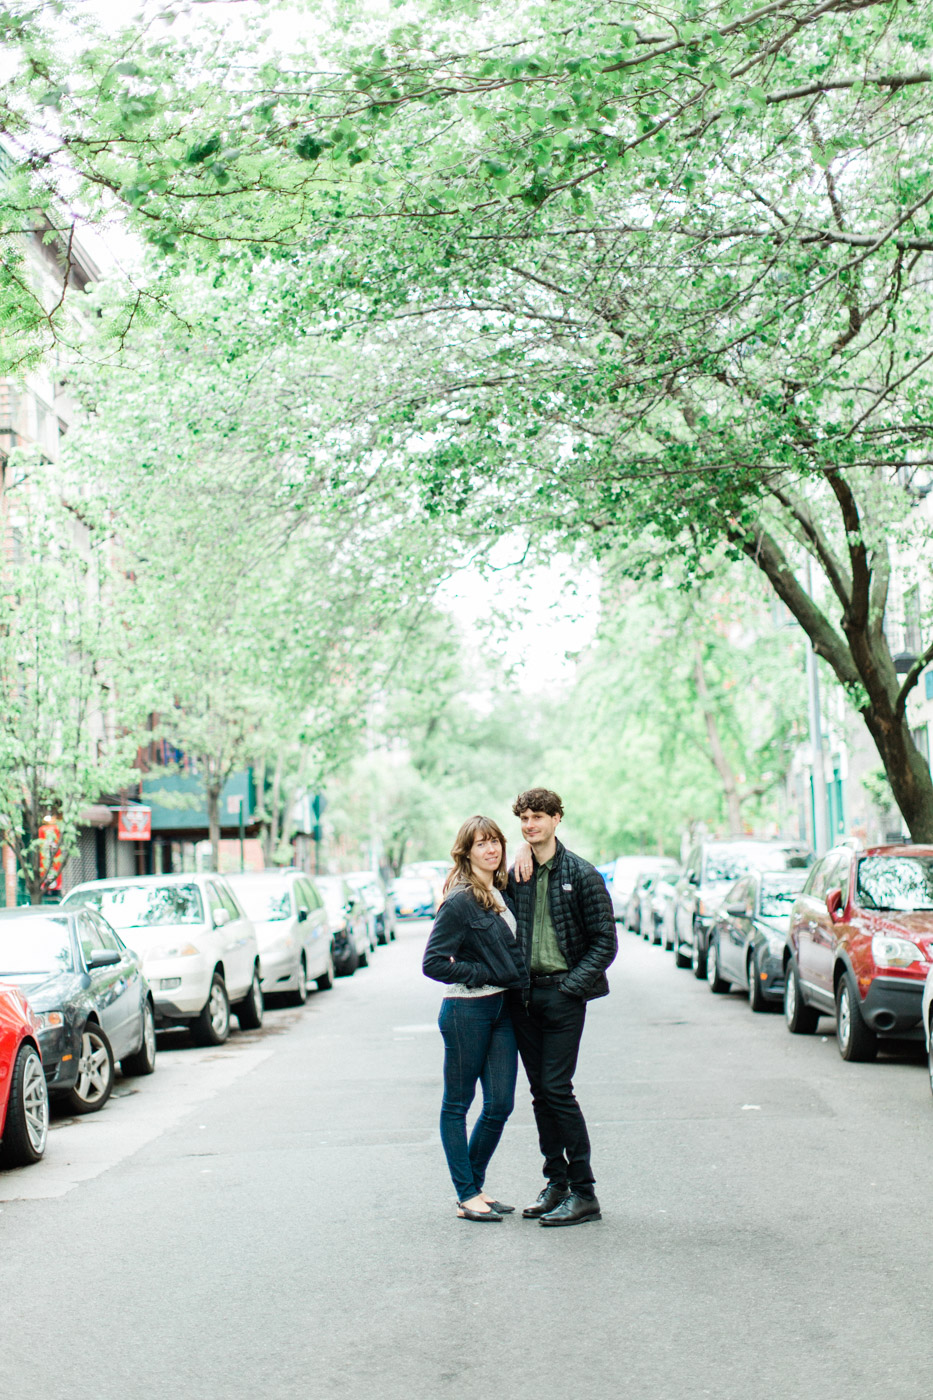 Toronto wedding photographer travels to New York to take engagement photographs.